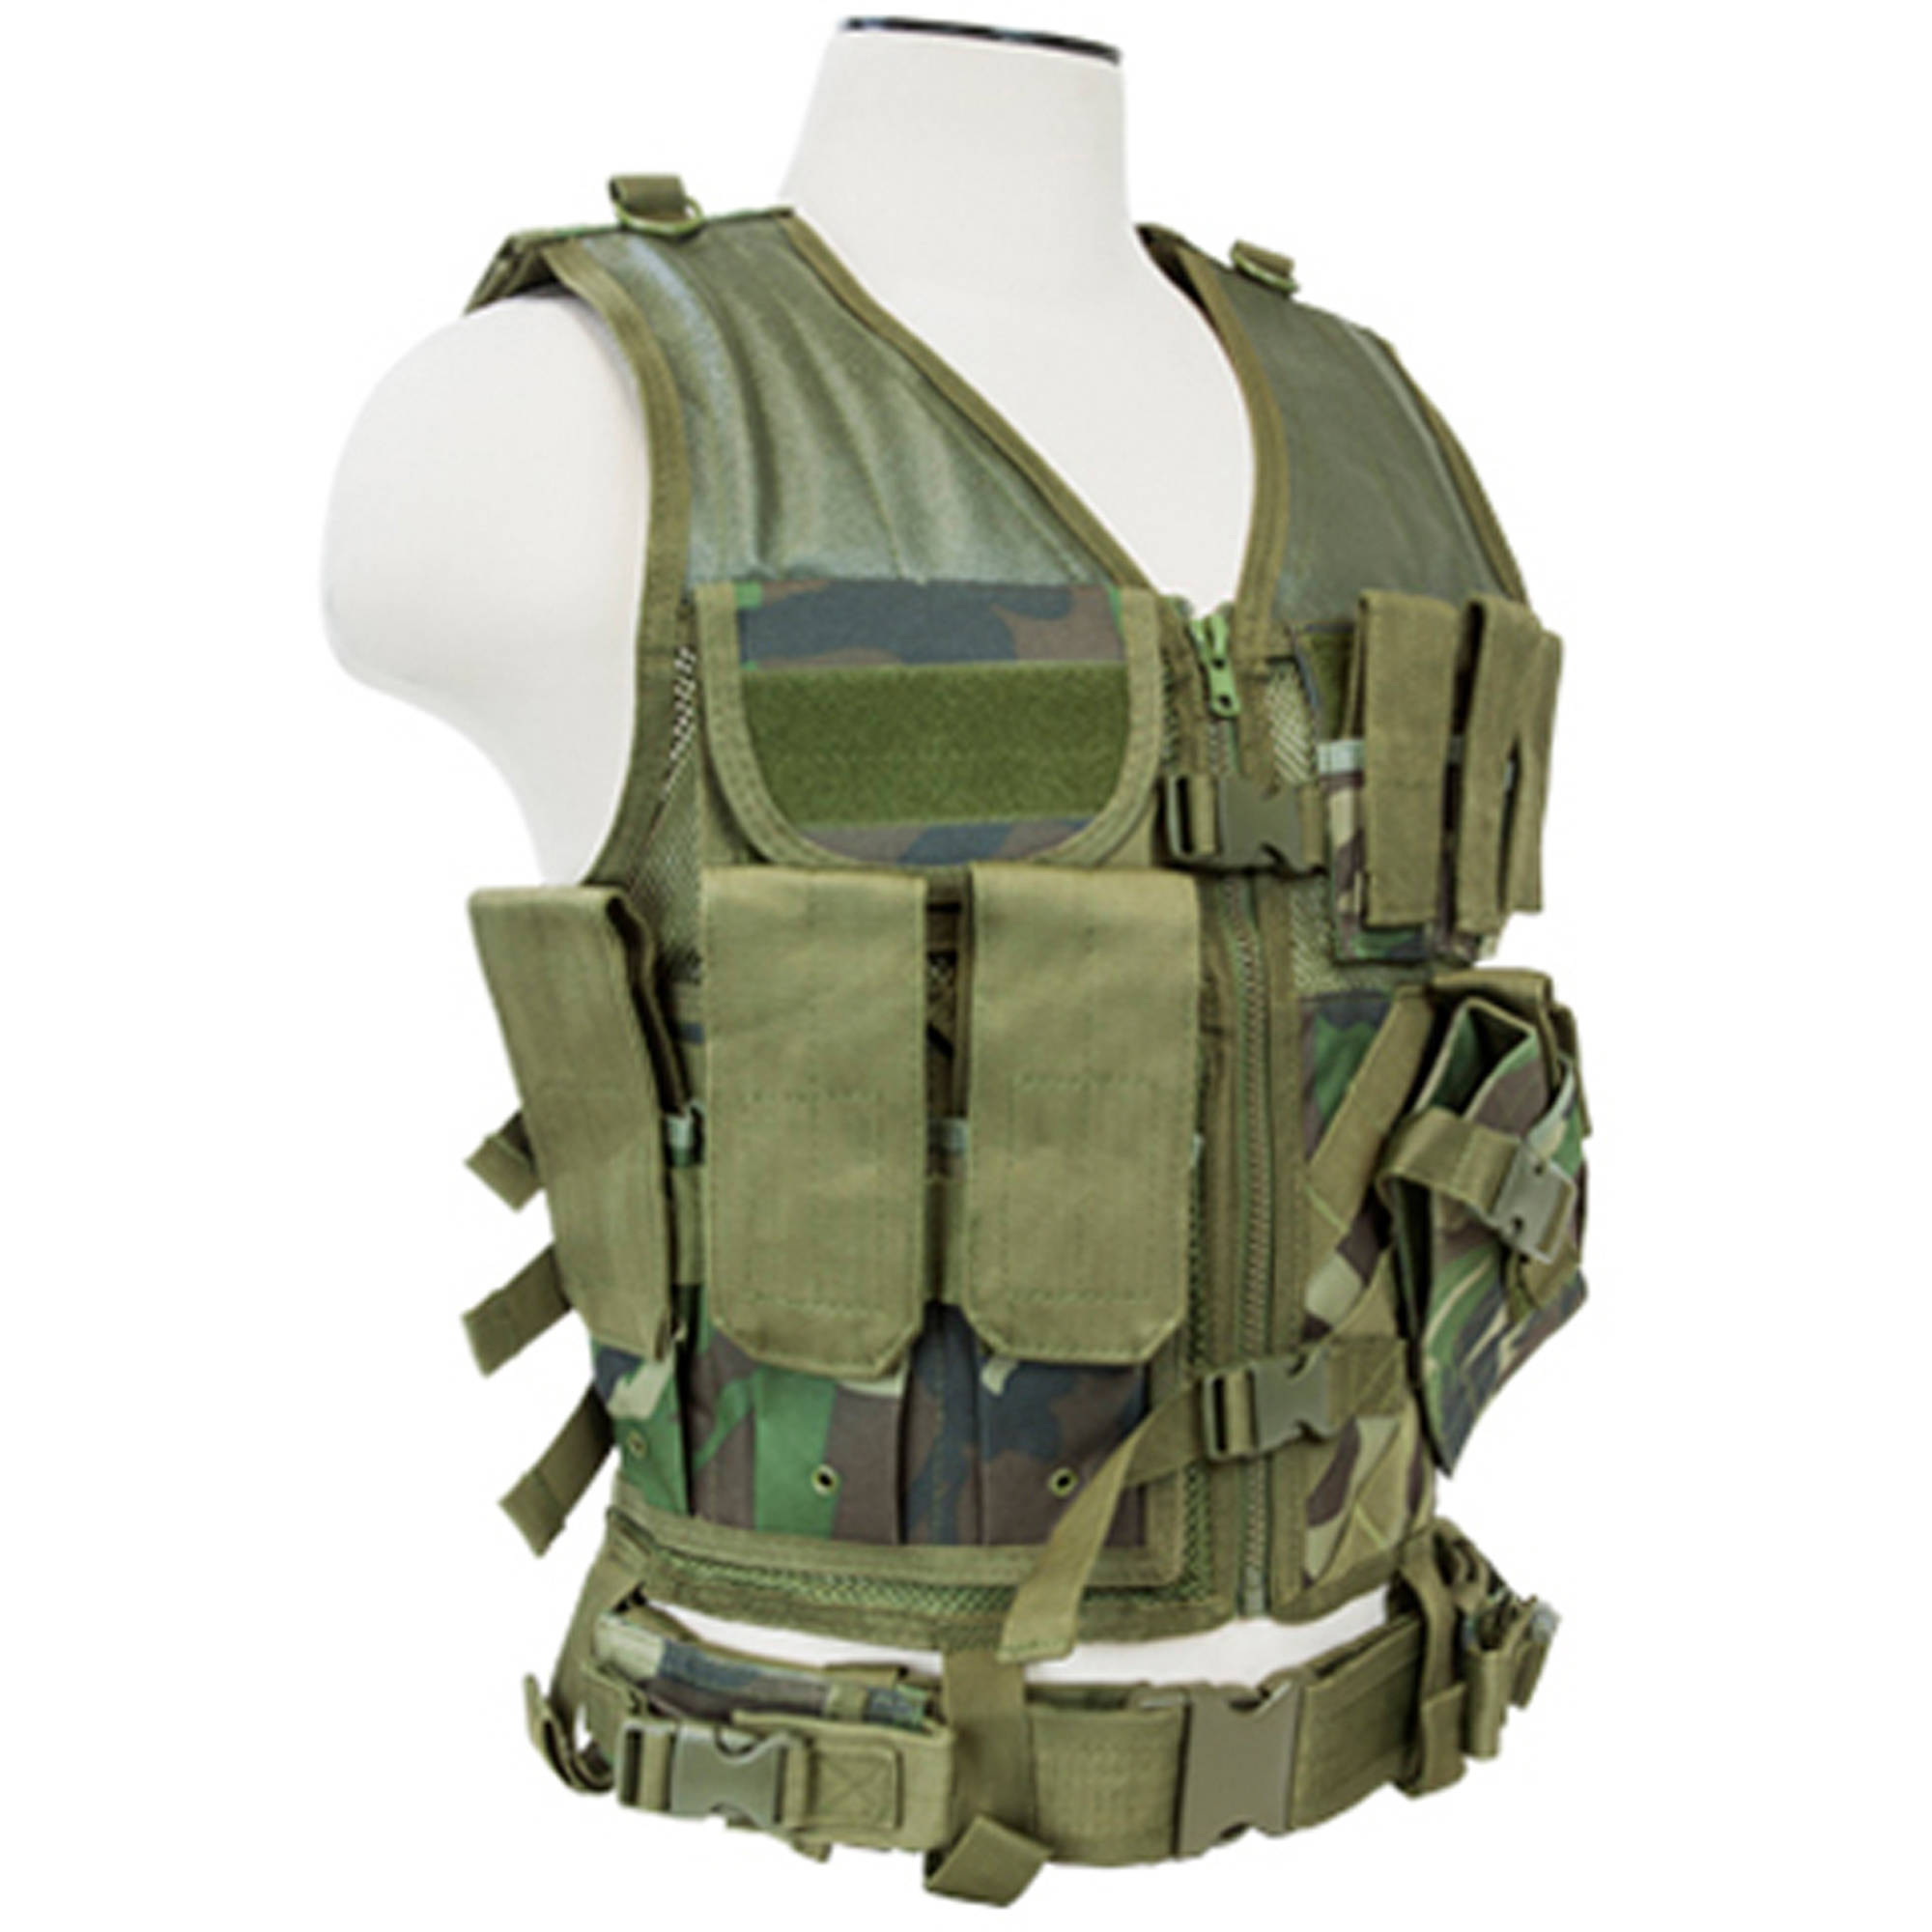 Tactical vest larger size woodland camo xl to xxl walmart fandeluxe Image collections